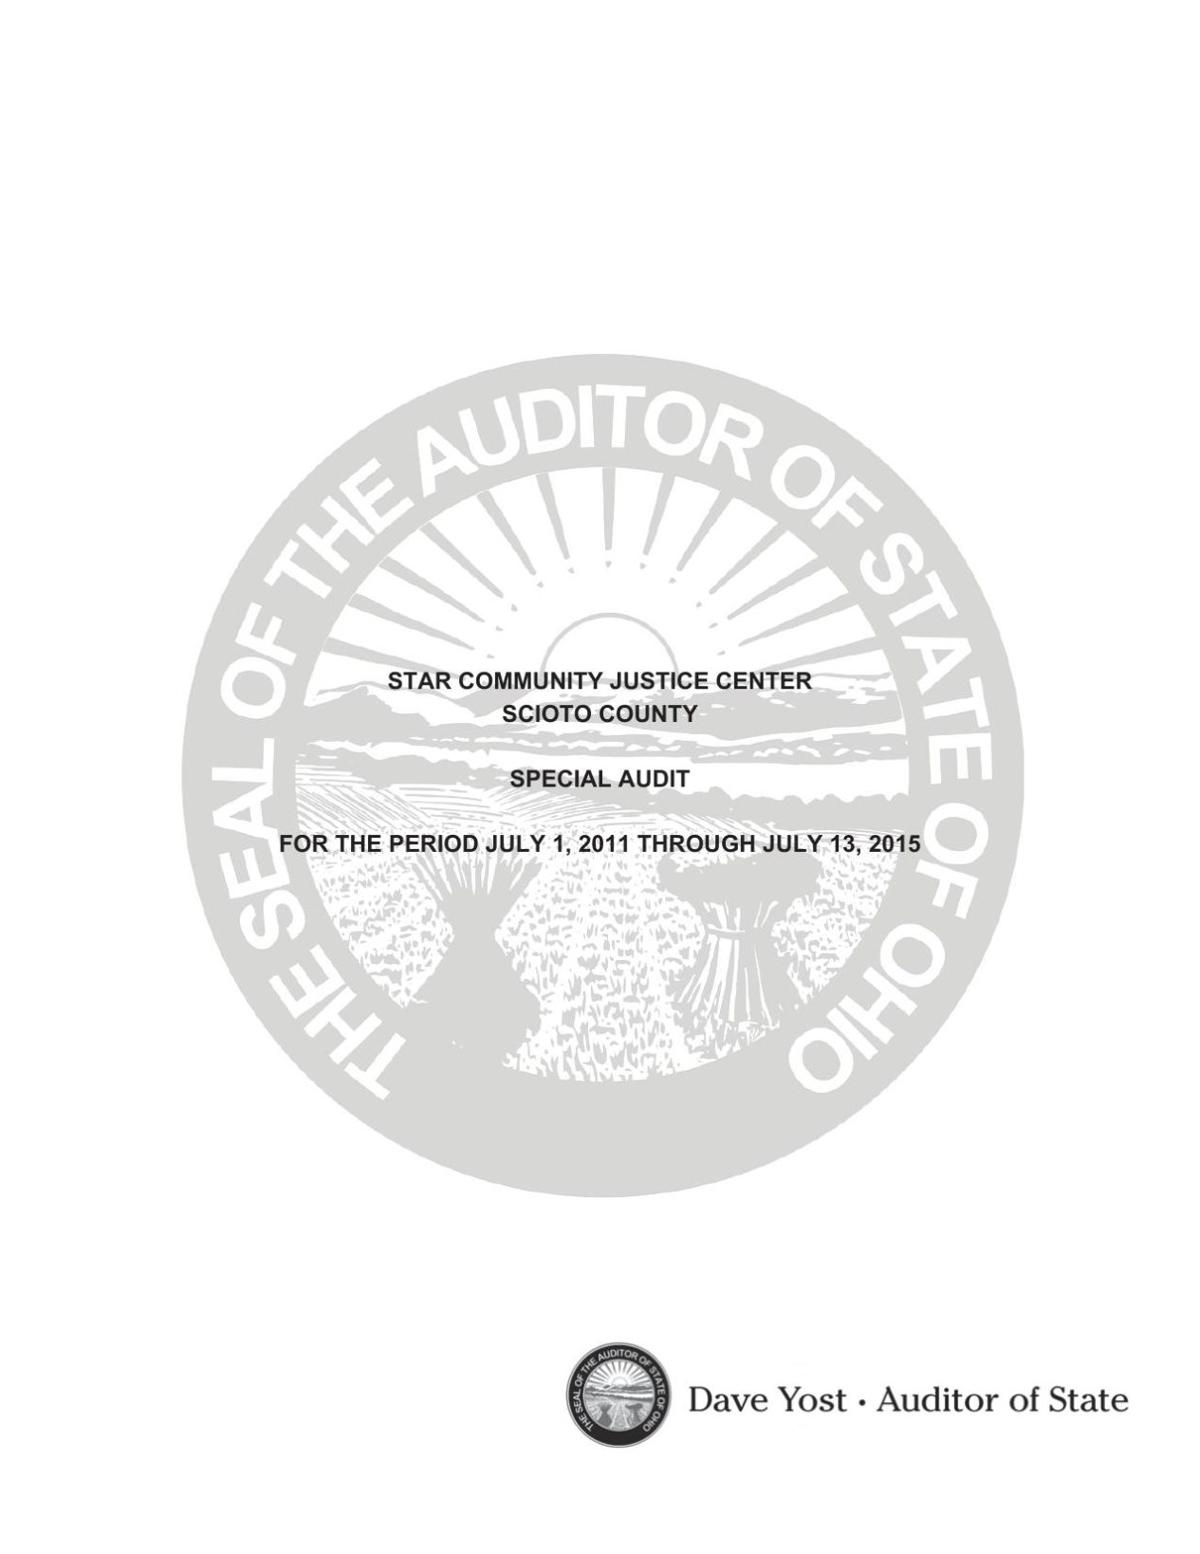 A copy of the special audit report into STAR Community Justice Center